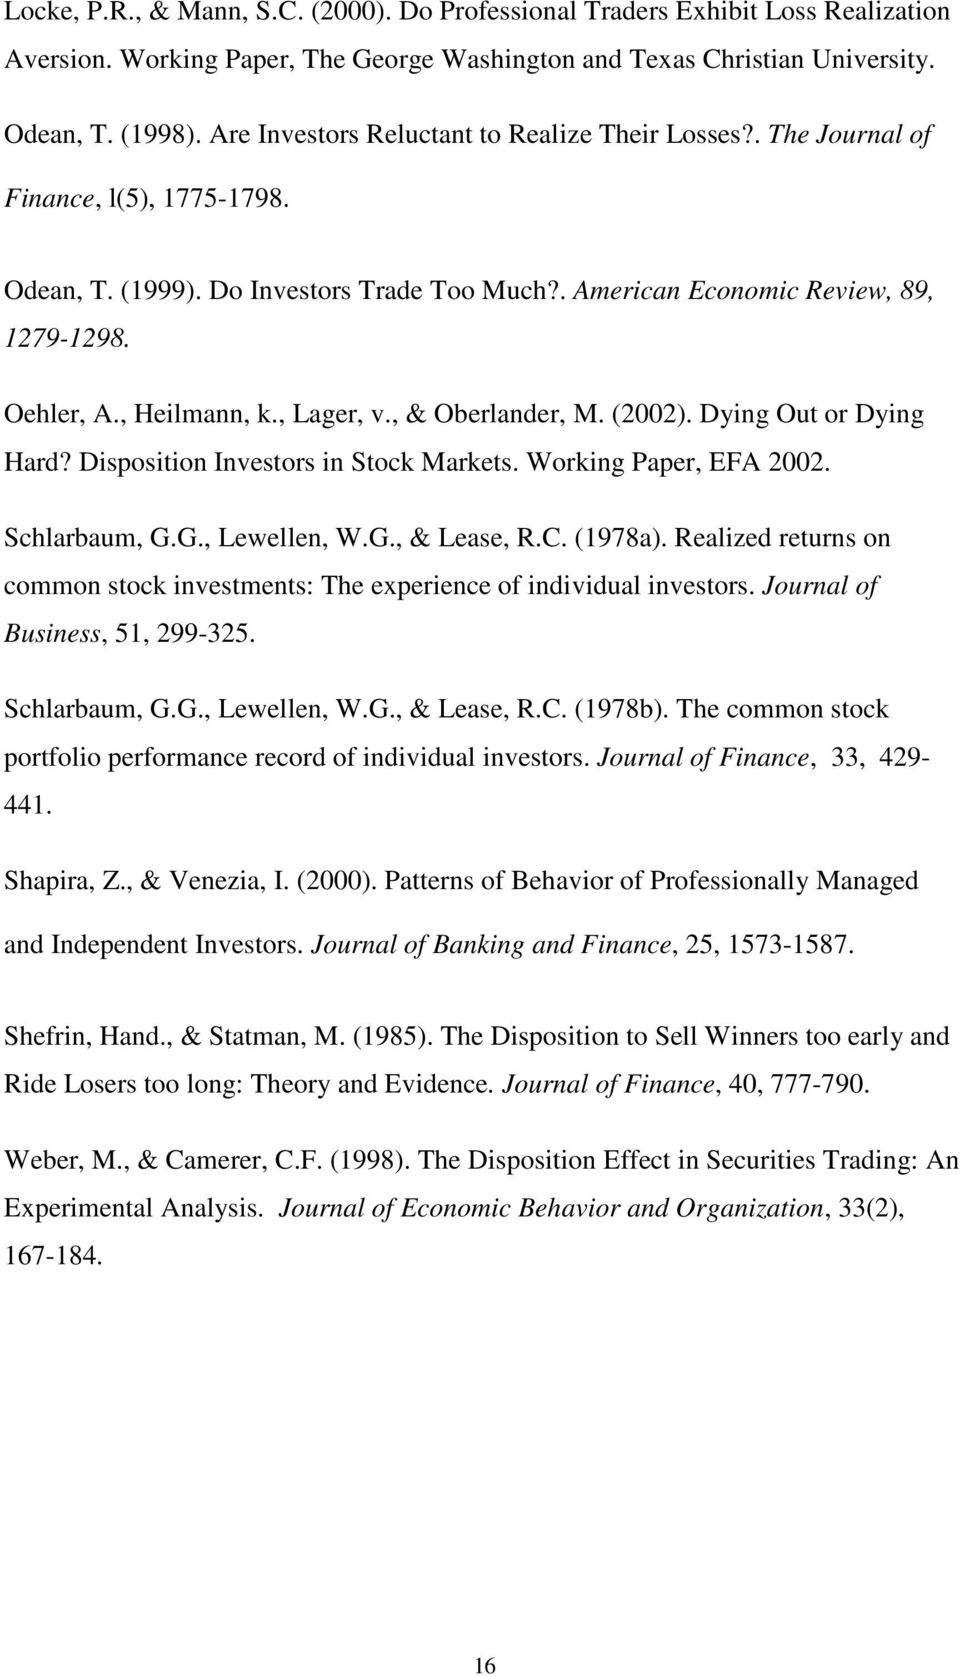 , Heilmann, k., Lager, v., & Oberlander, M. (2002). Dying Out or Dying Hard? Disposition Investors in Stock Markets. Working Paper, EFA 2002. Schlarbaum, G.G., Lewellen, W.G., & Lease, R.C. (1978a).